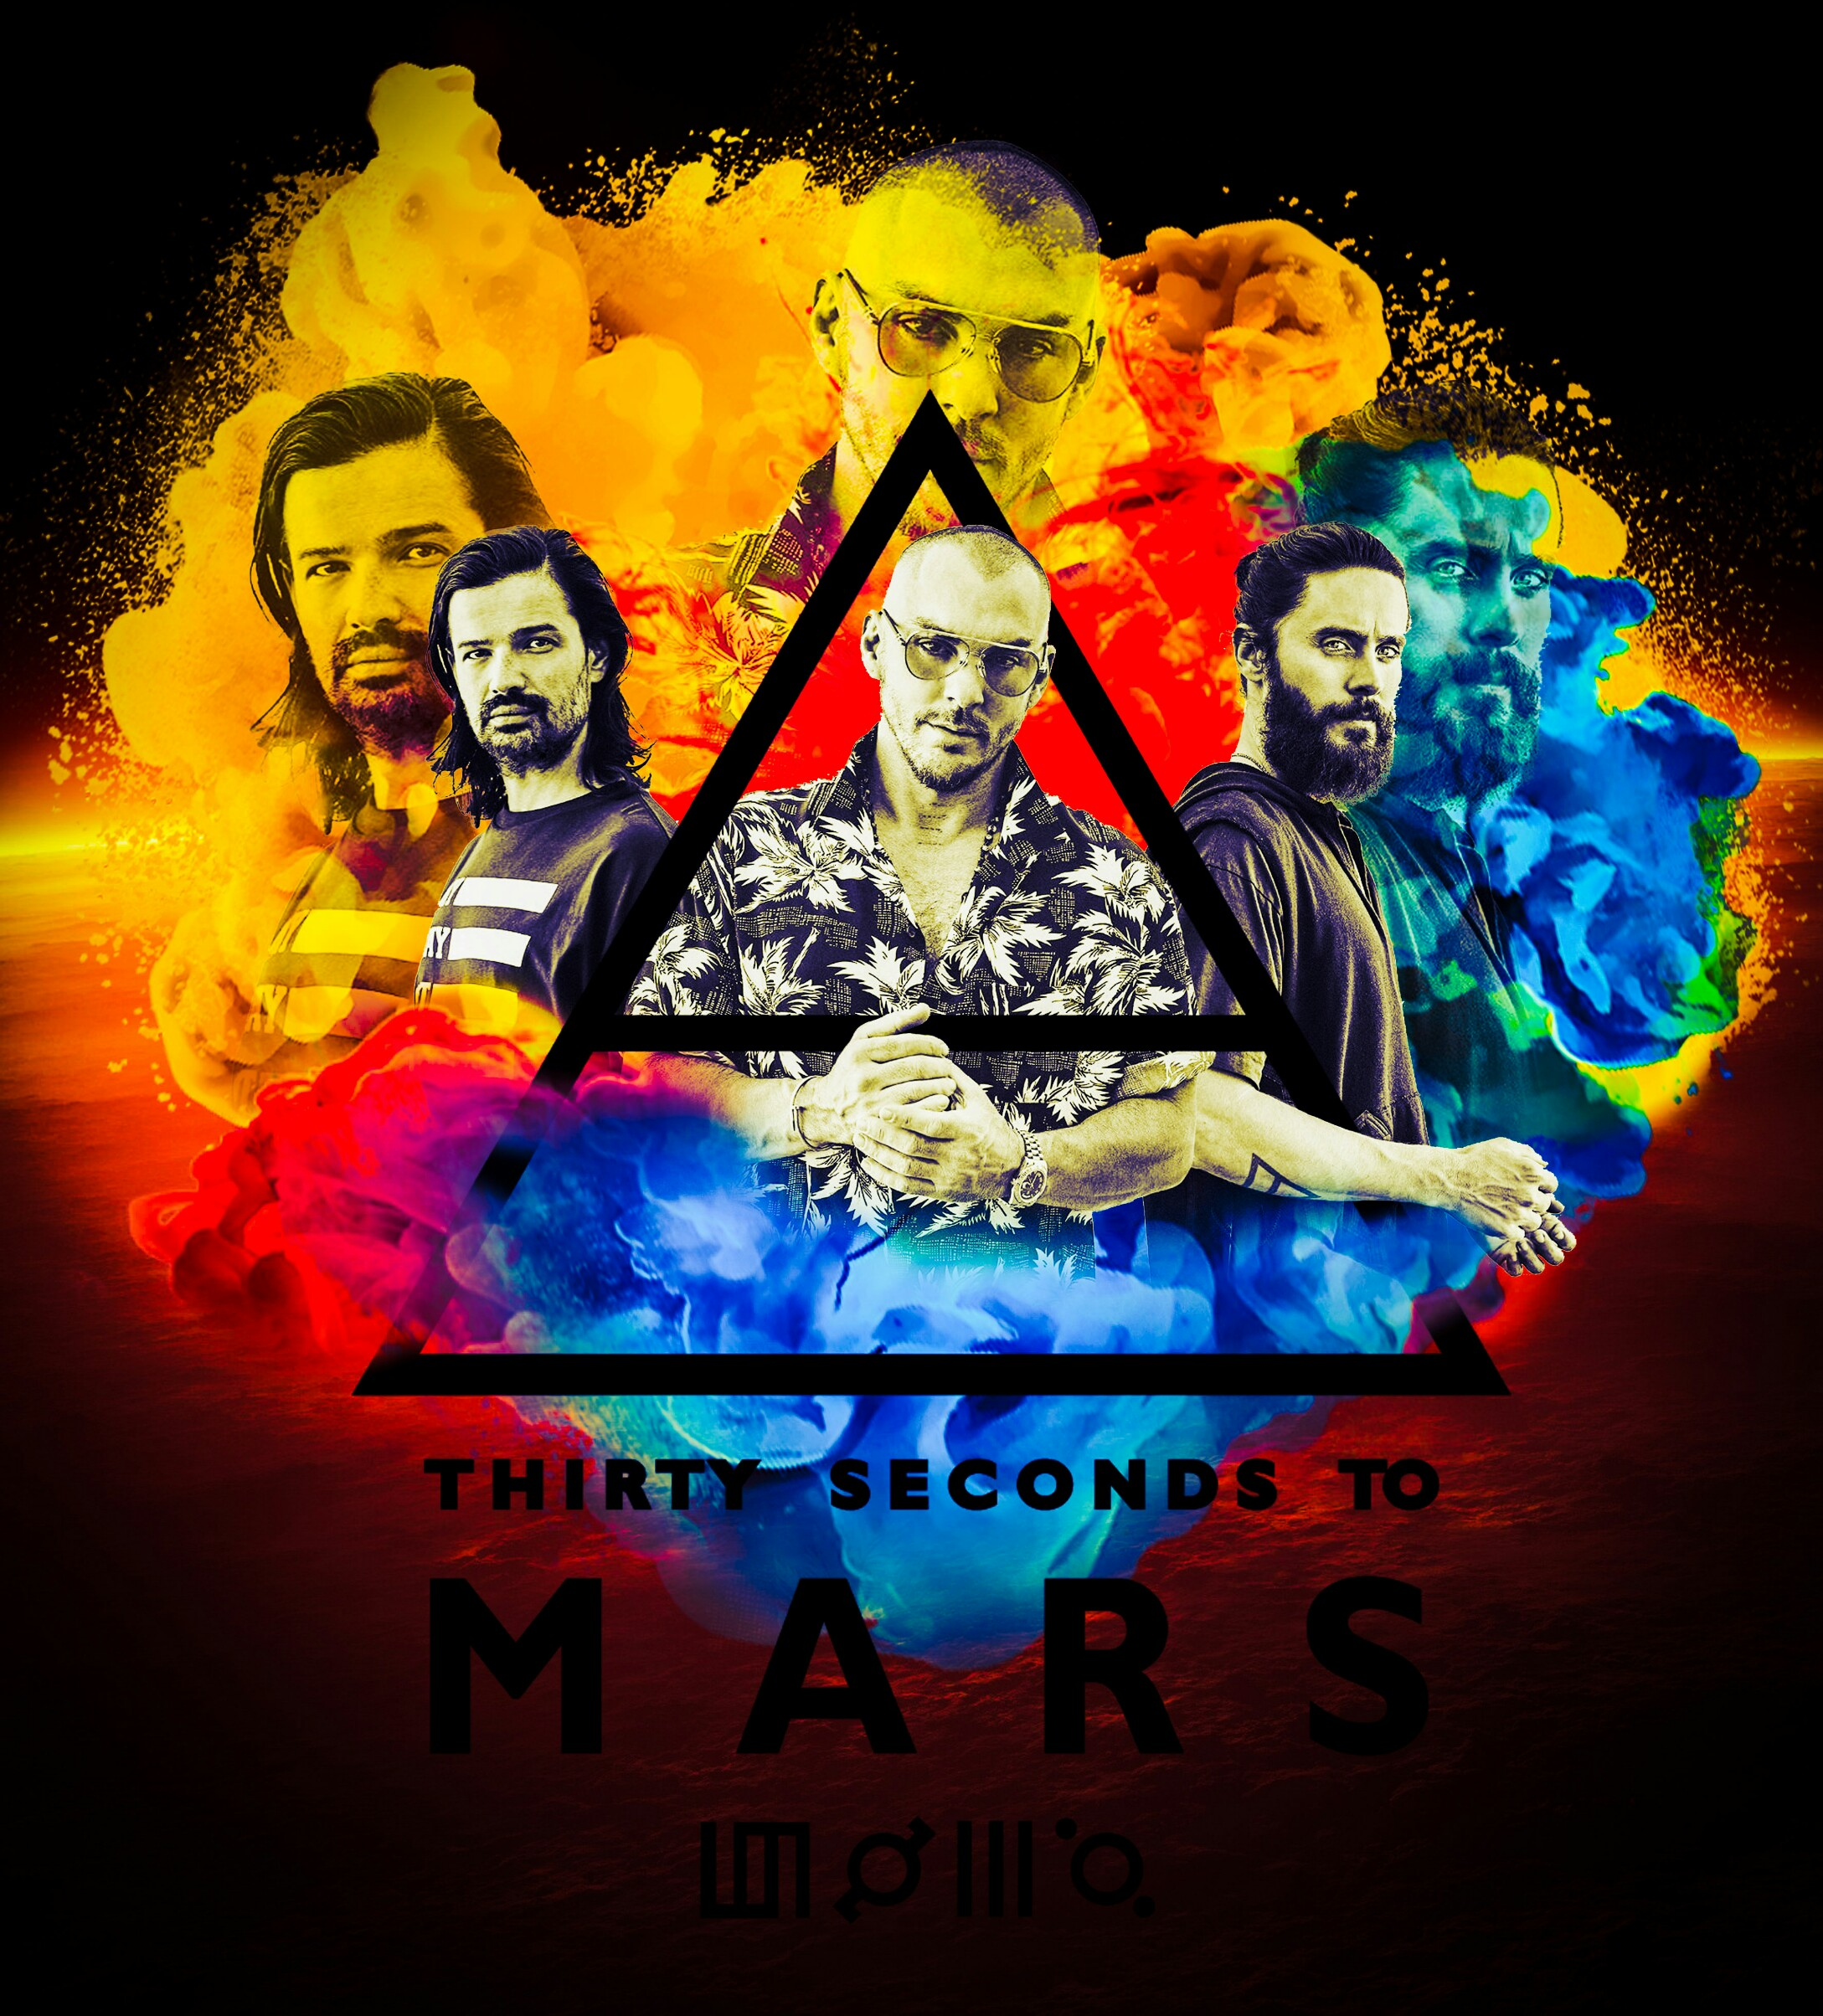 Thank you everyone for your support! 😁😁😁 #wap30stm #myedit #30secondstomars #30stmcallenge #PicsArt #madewithpicsart #madebyme #thirtysecondstomars #col